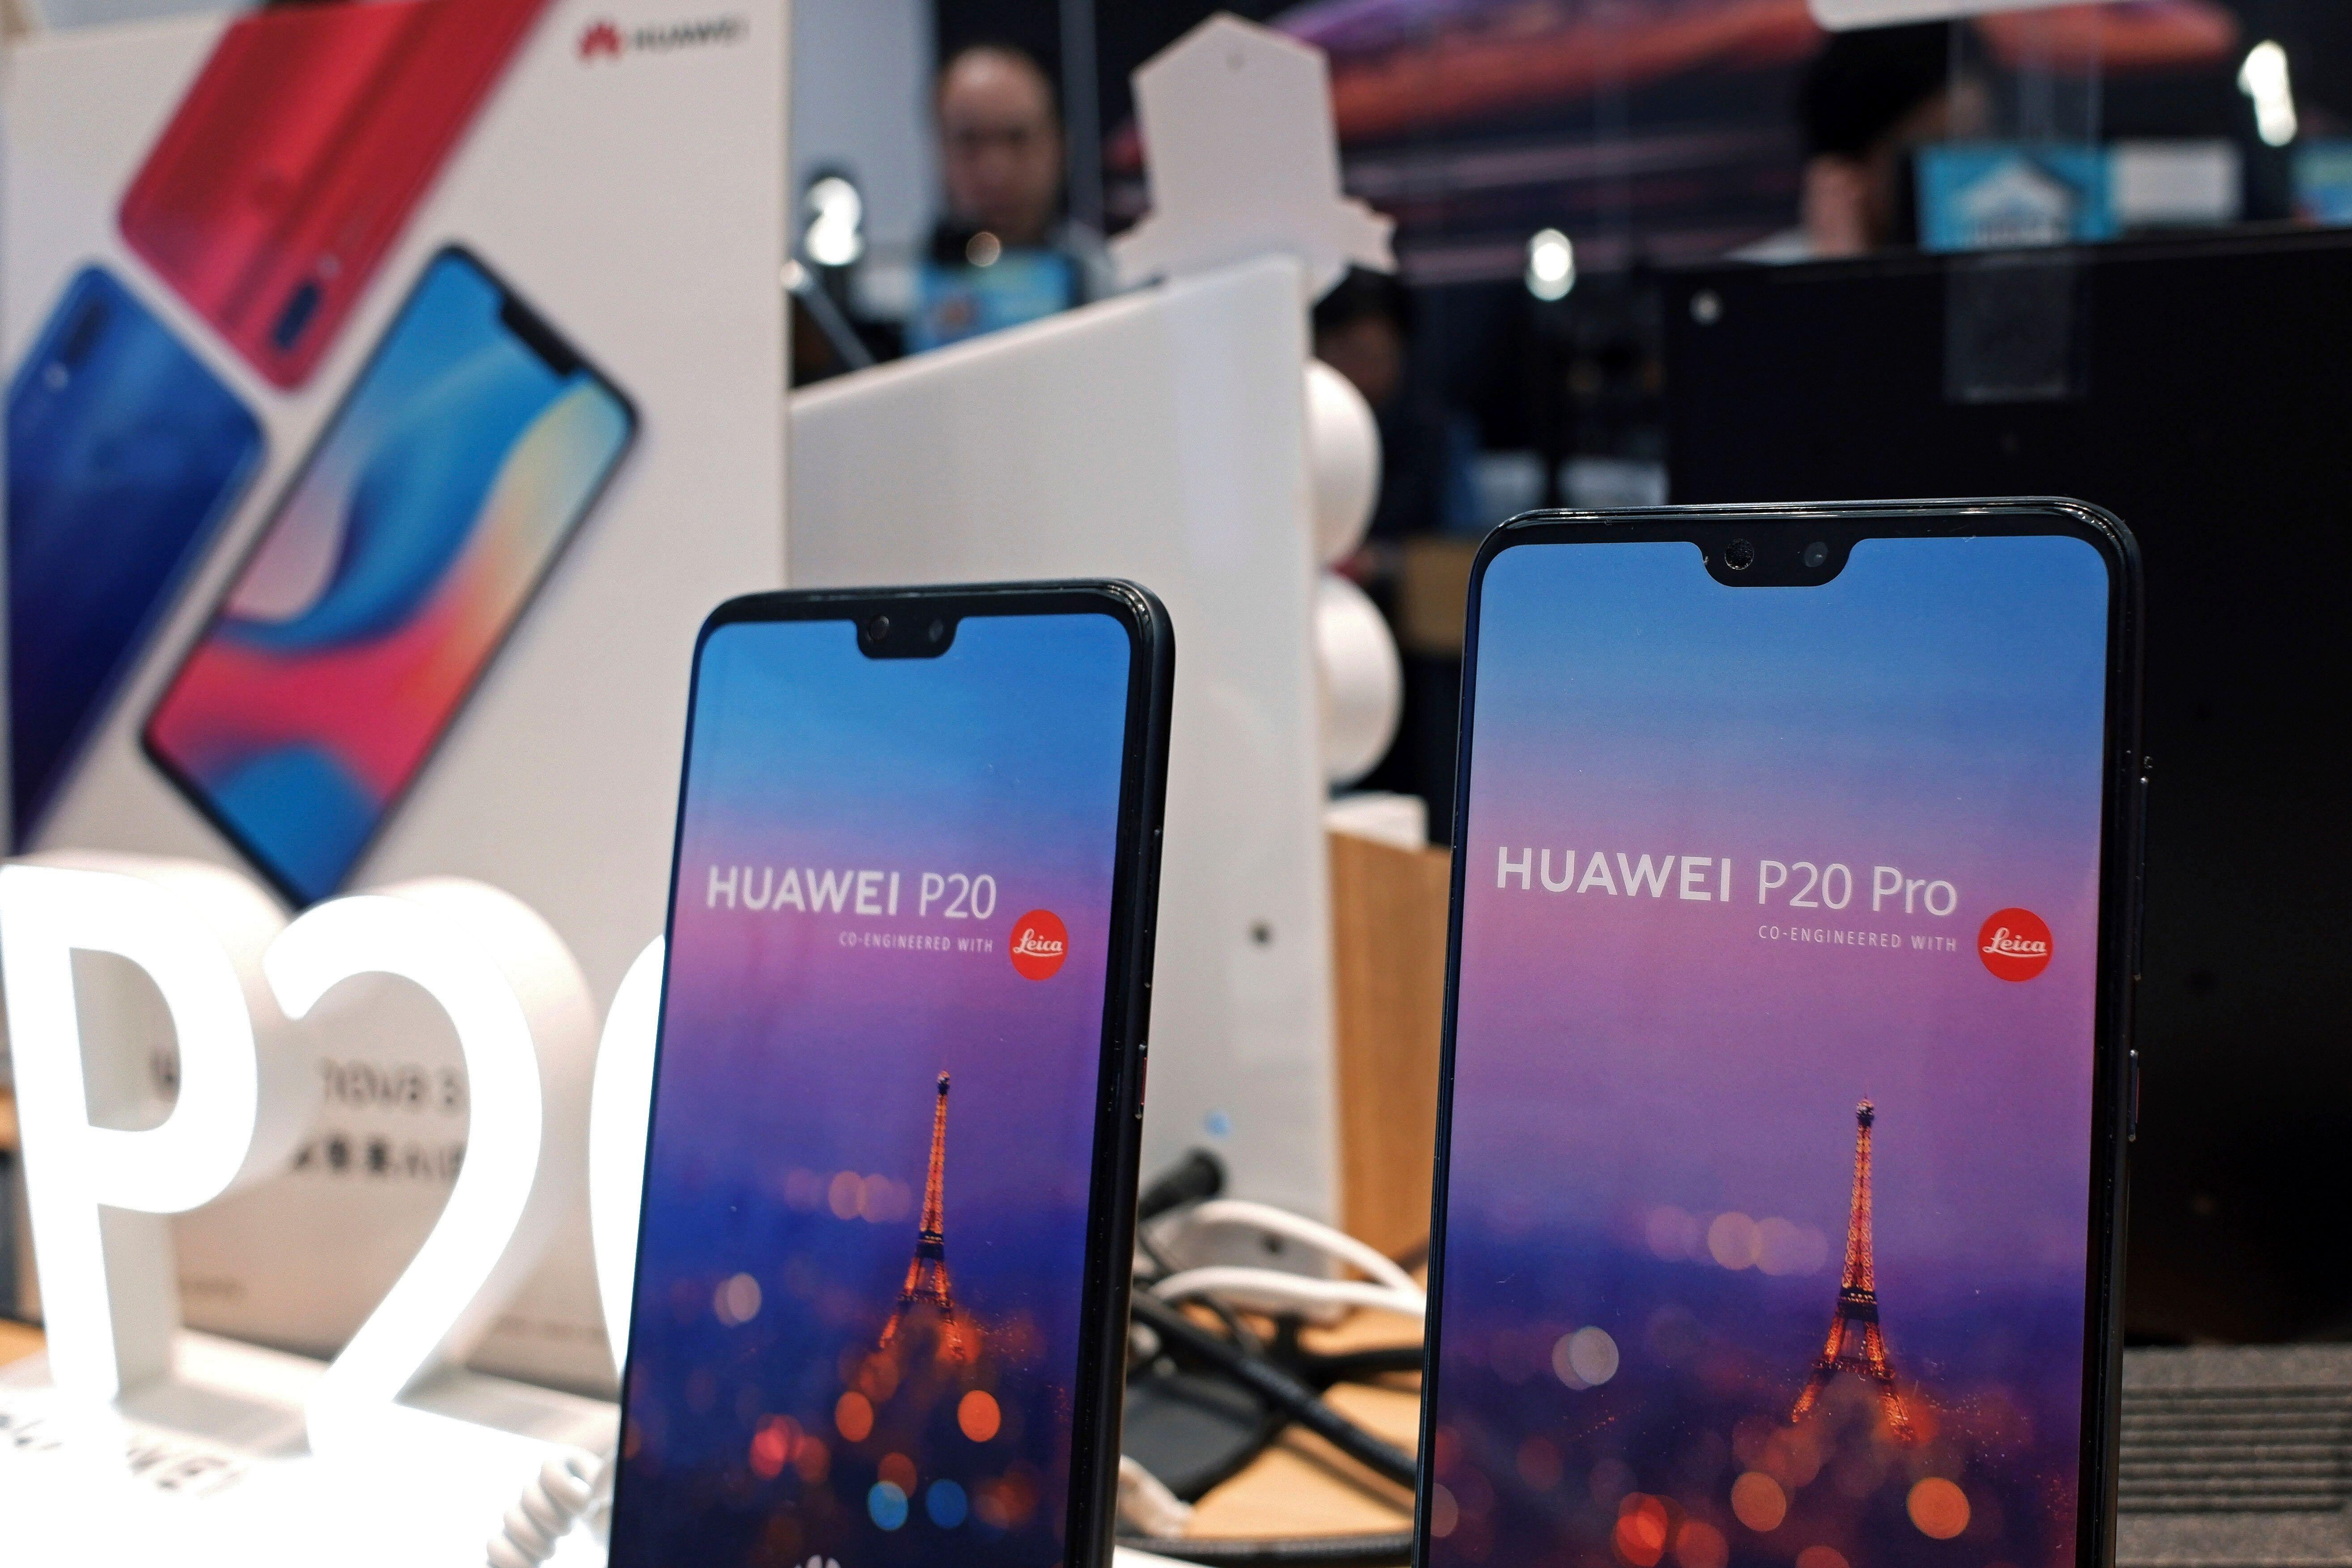 Huawei customers worry: will my phone work without Google?